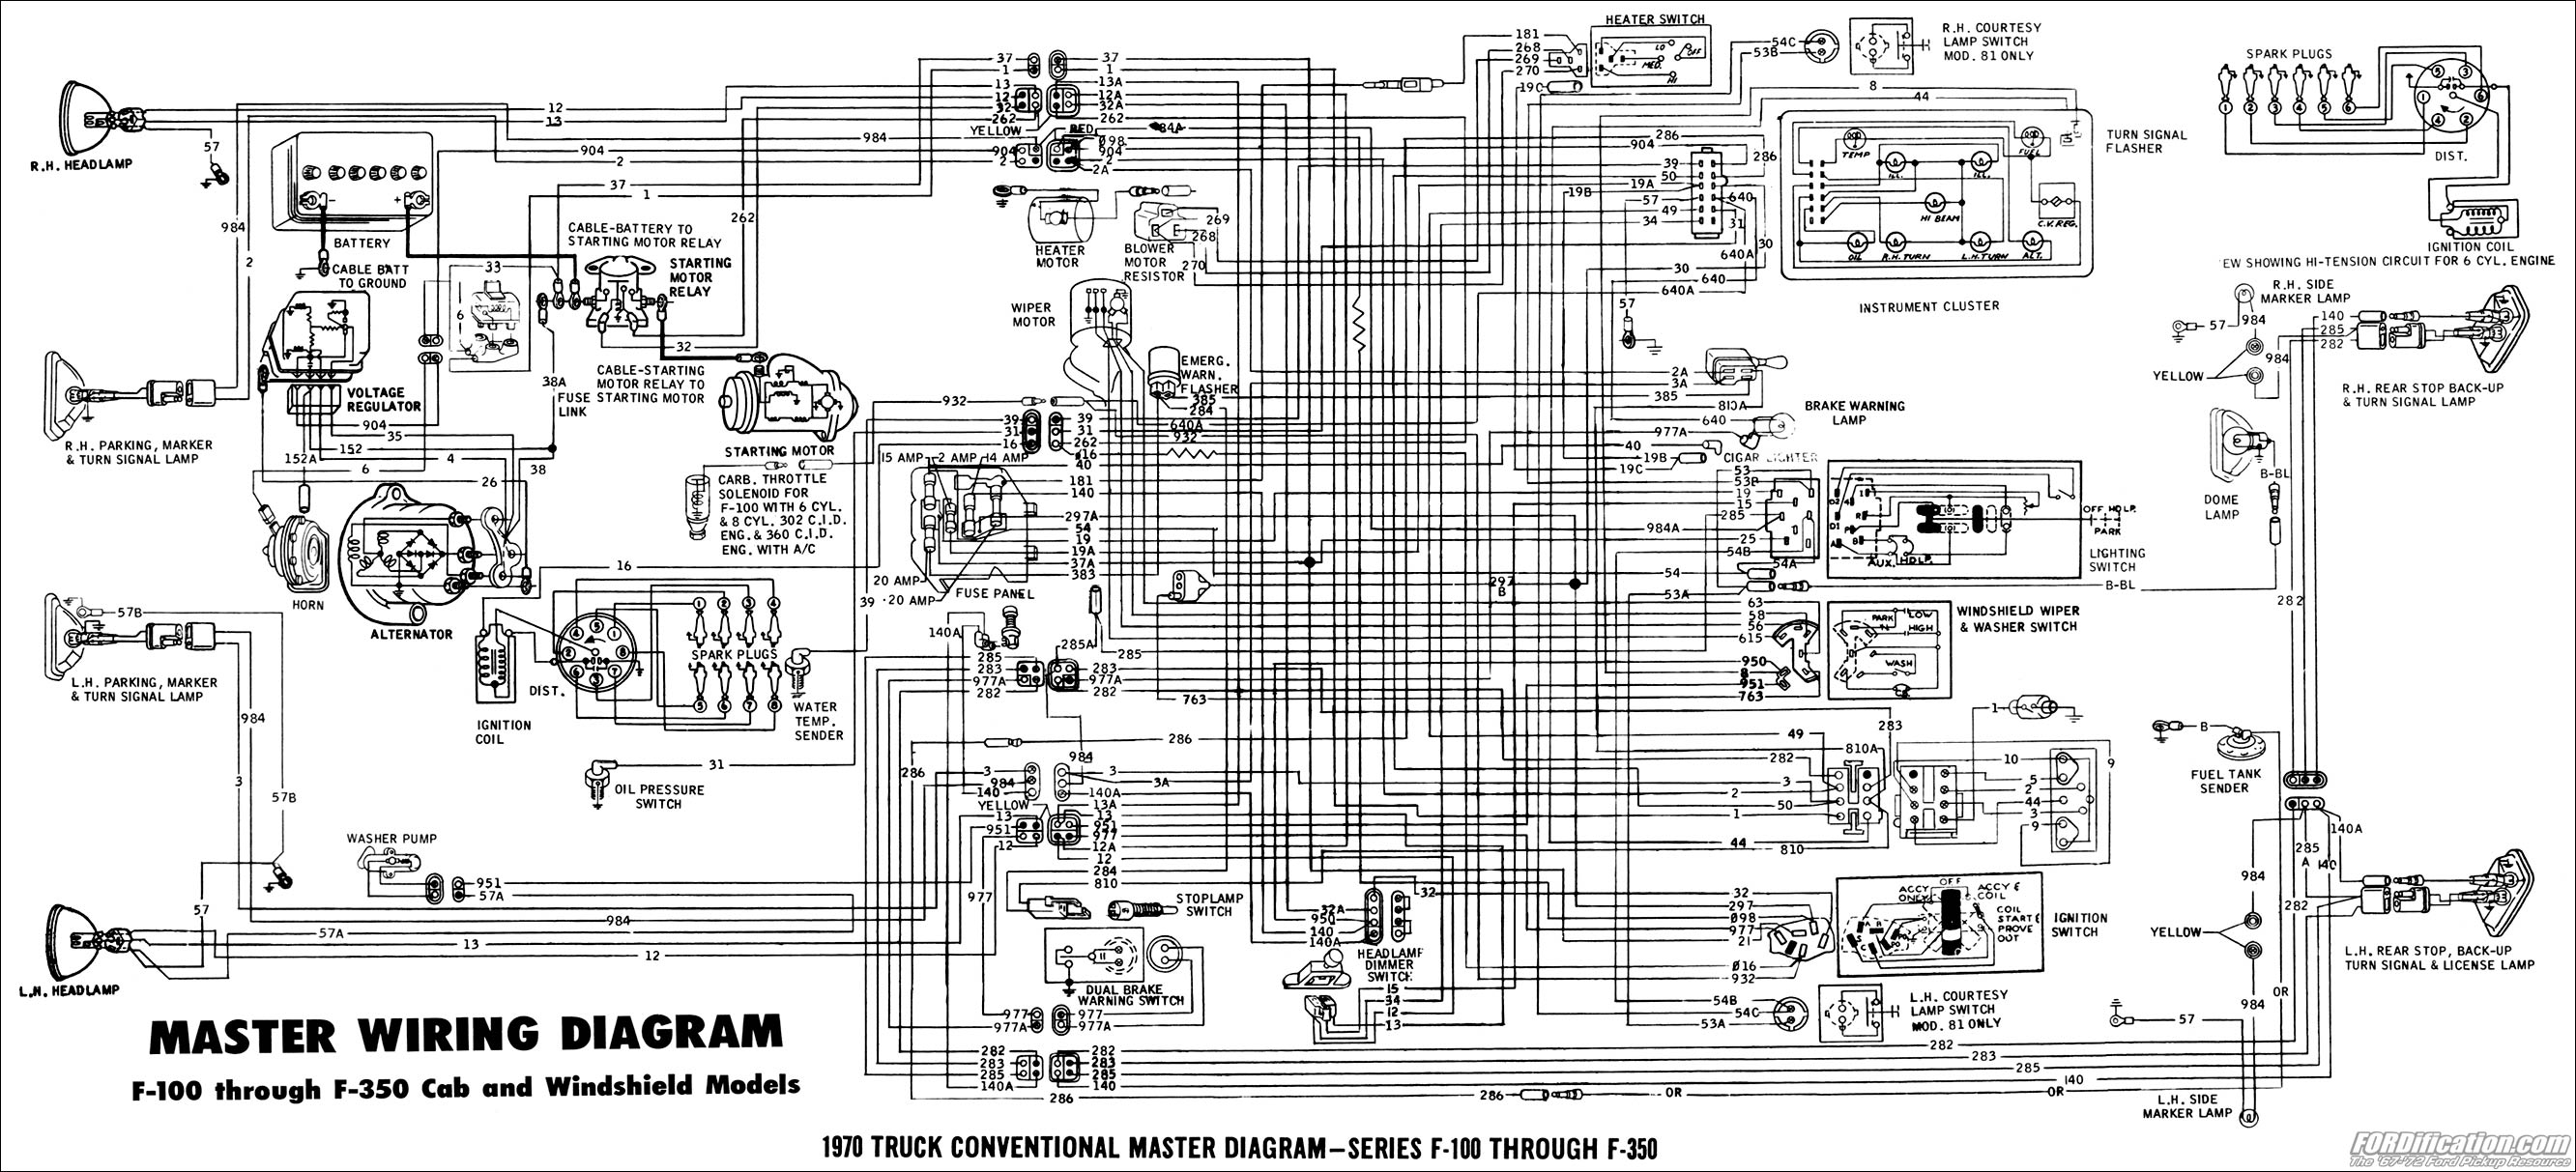 p096 viper 5901 wiring diagram & viper remote start wiring diagram s2000 power steering wiring diagram at n-0.co